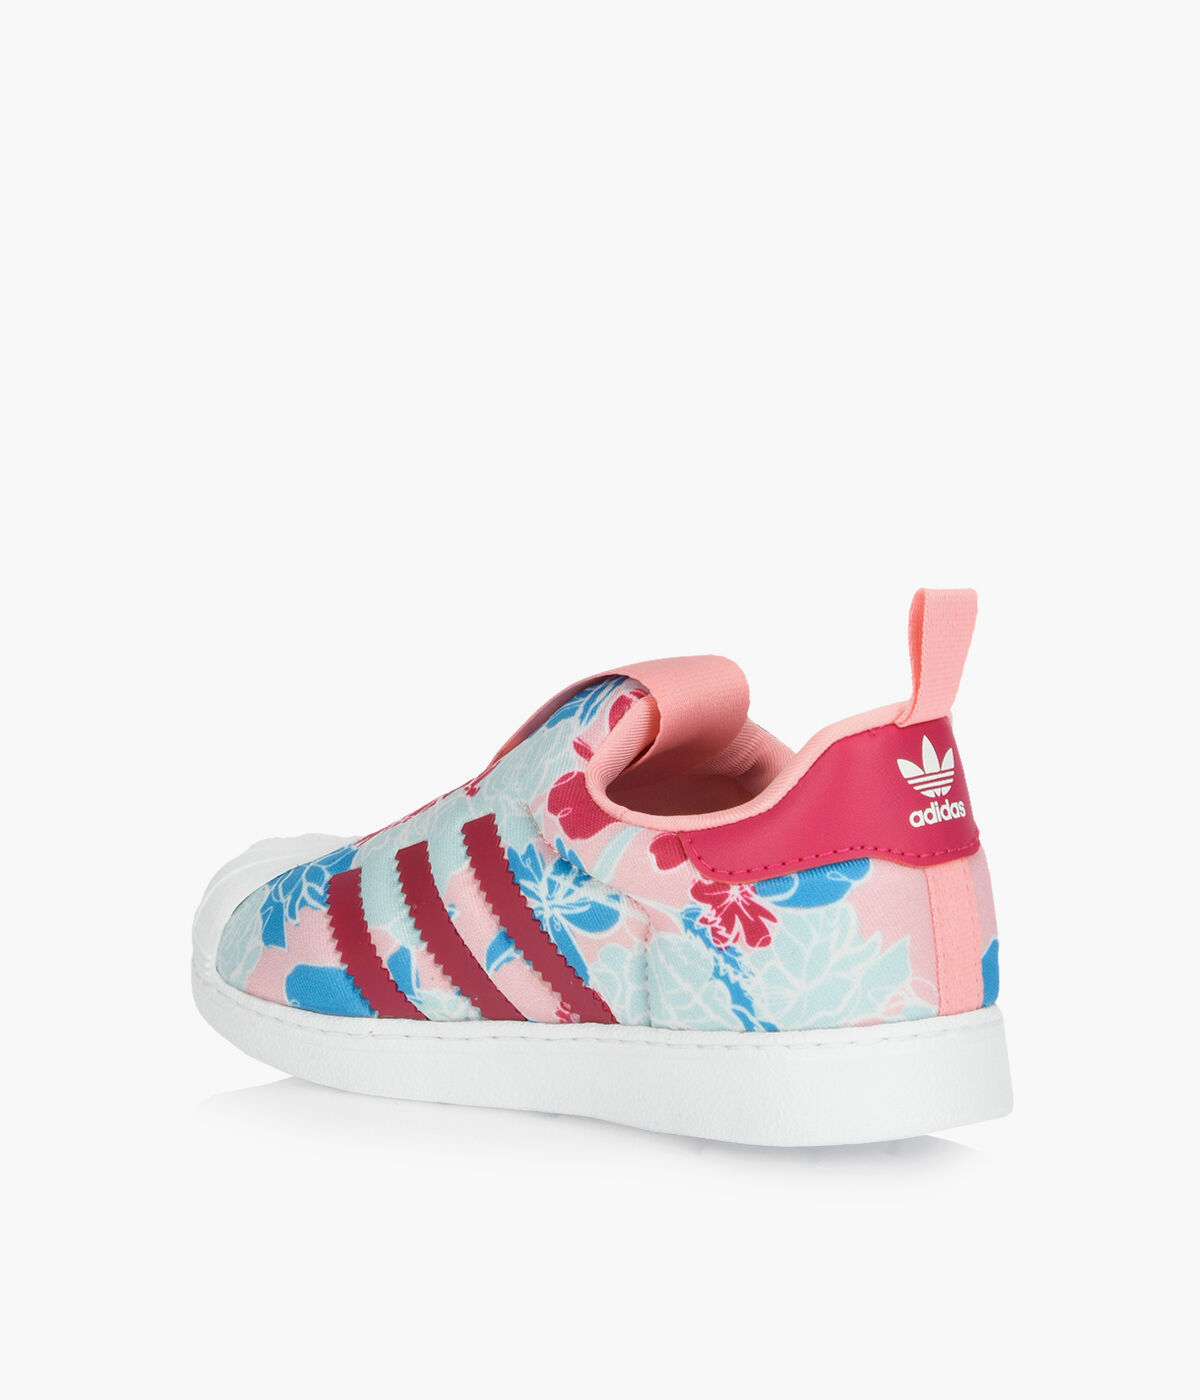 ADIDAS SUPERSTAR 360I - Pink | Browns Shoes